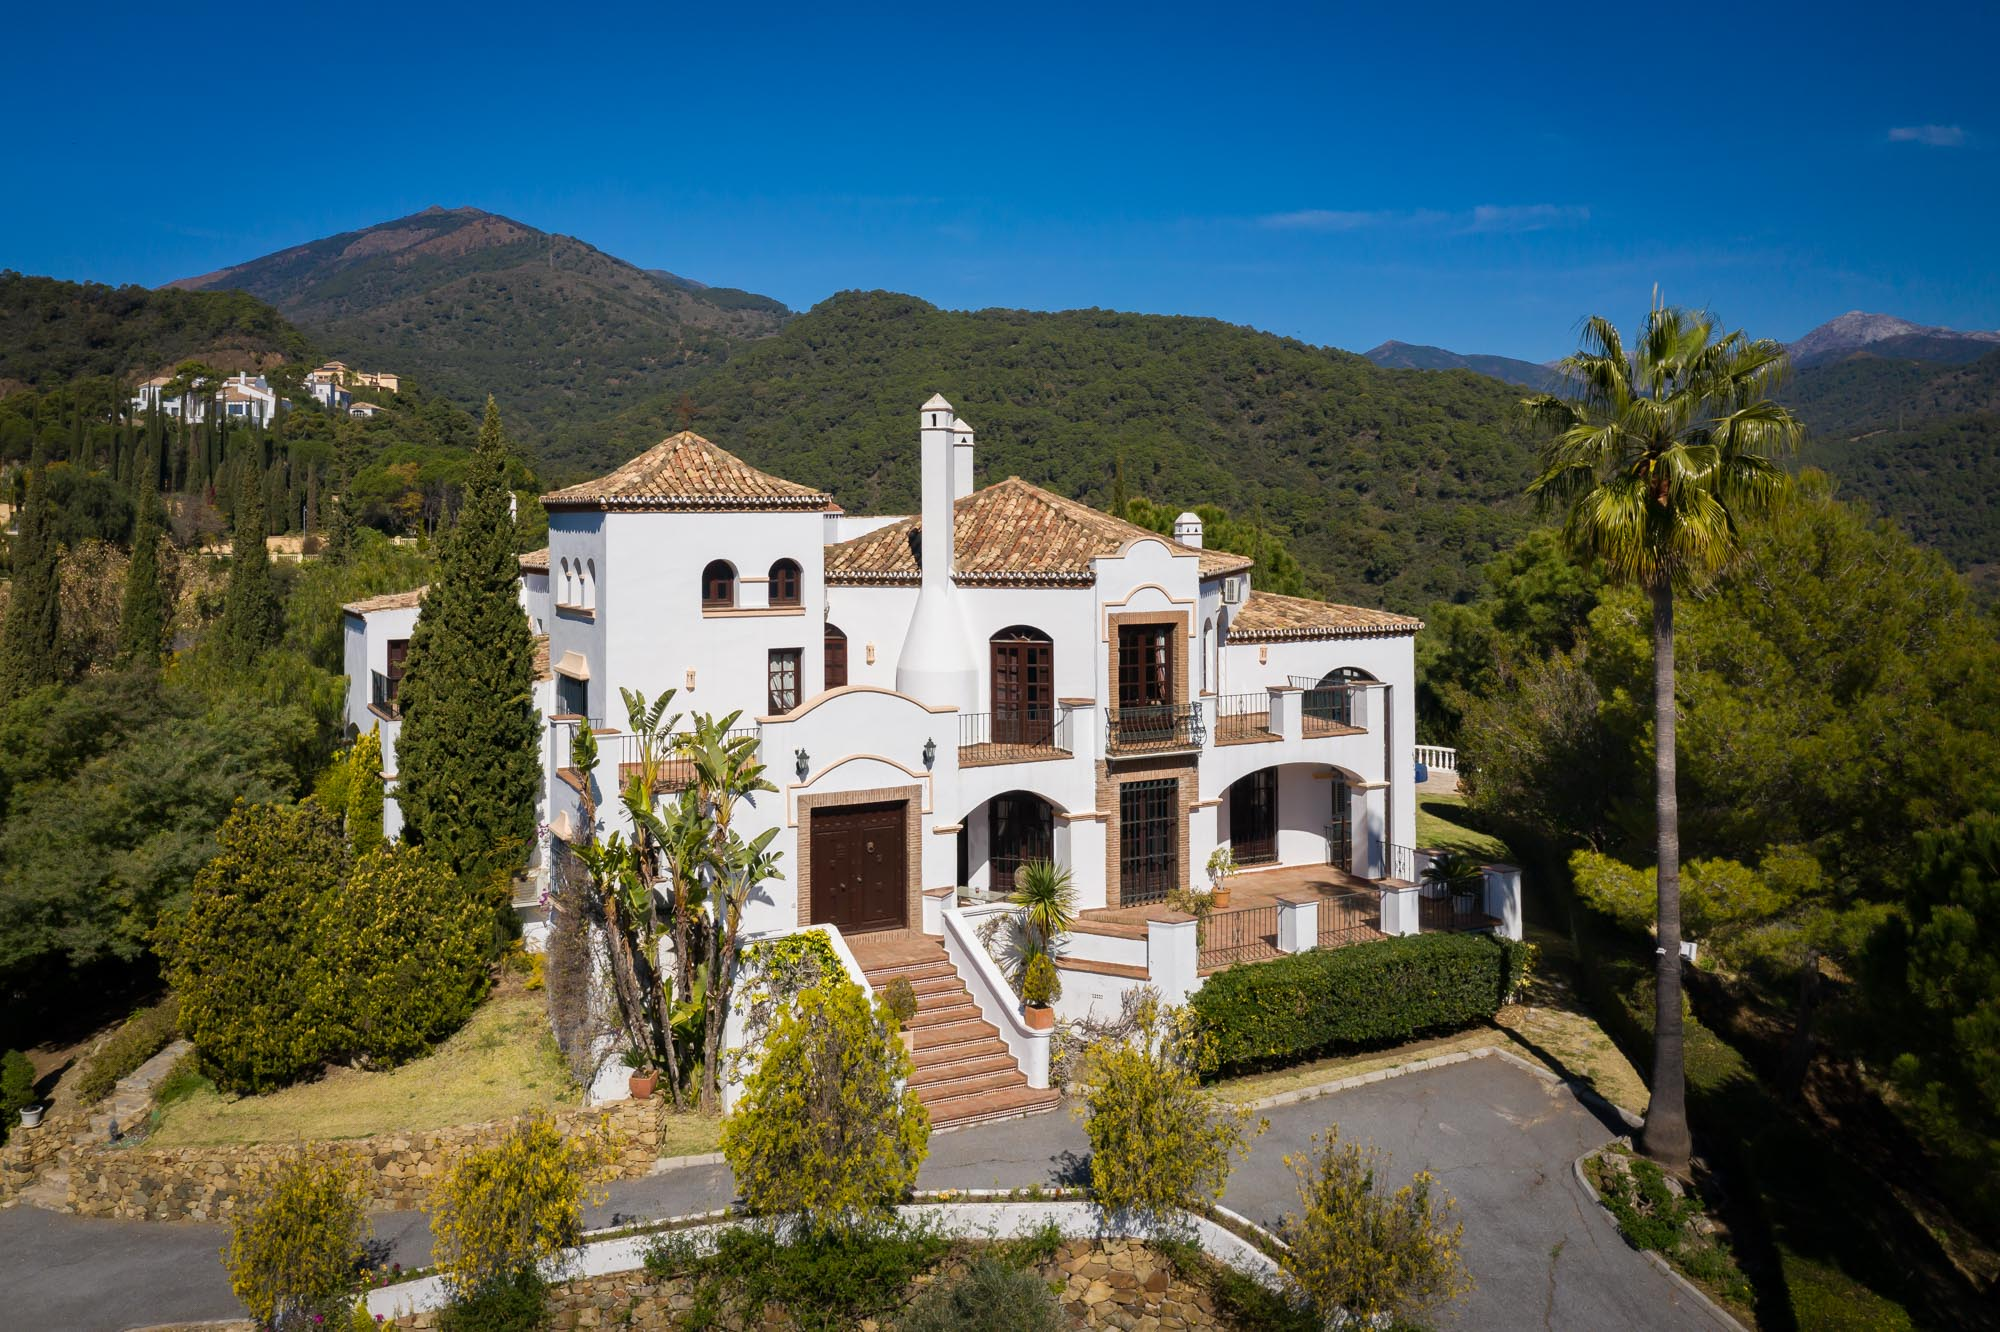 Andalucian style villa located in the rolling countryside of Benahavis